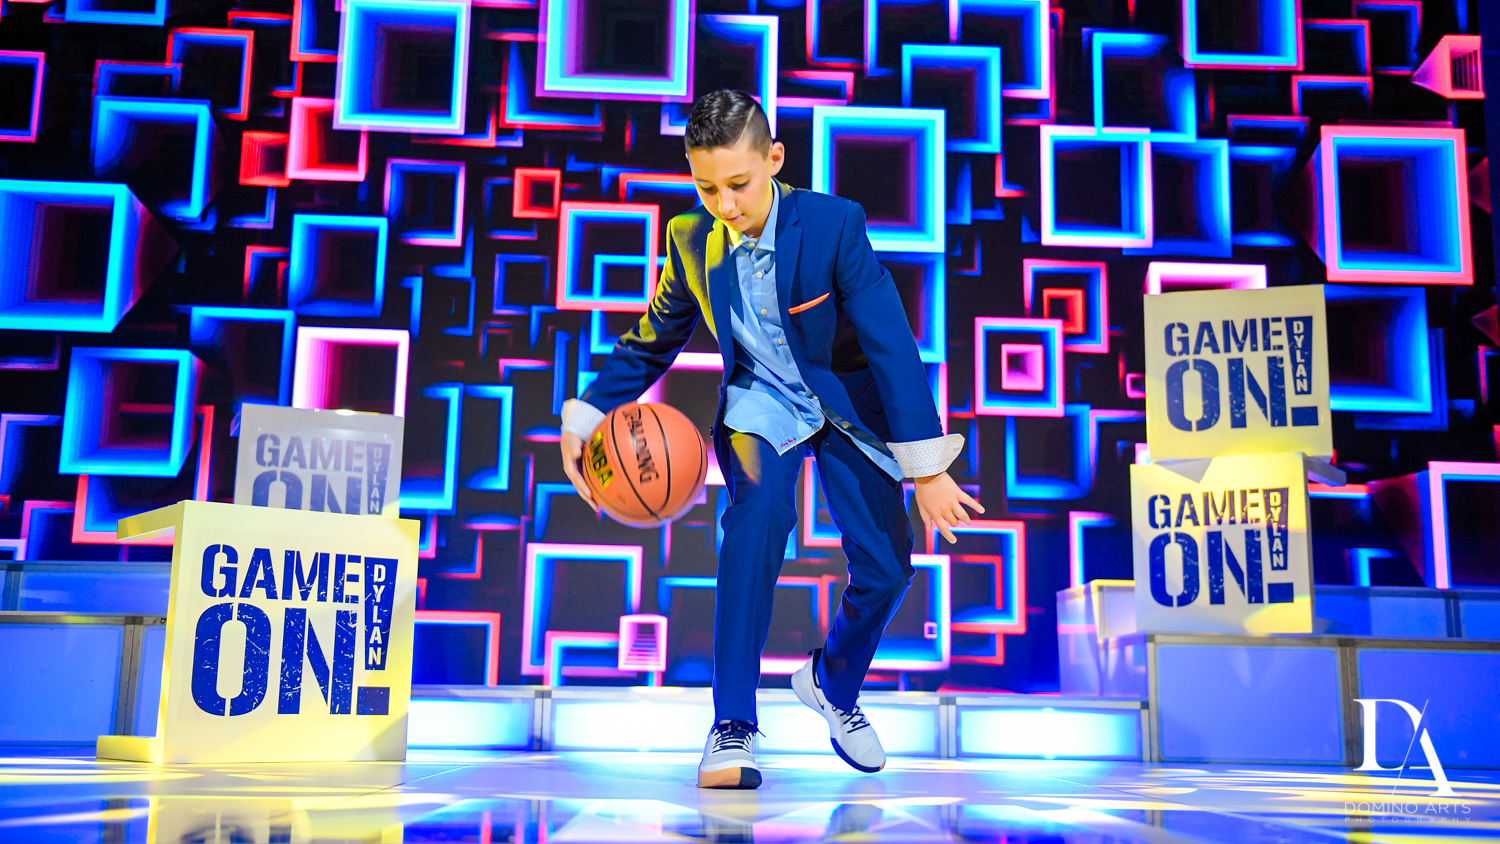 Basketball portraits at Sports Theme Bar Mitzvah at DS Sports Plex by Domino Arts Photography